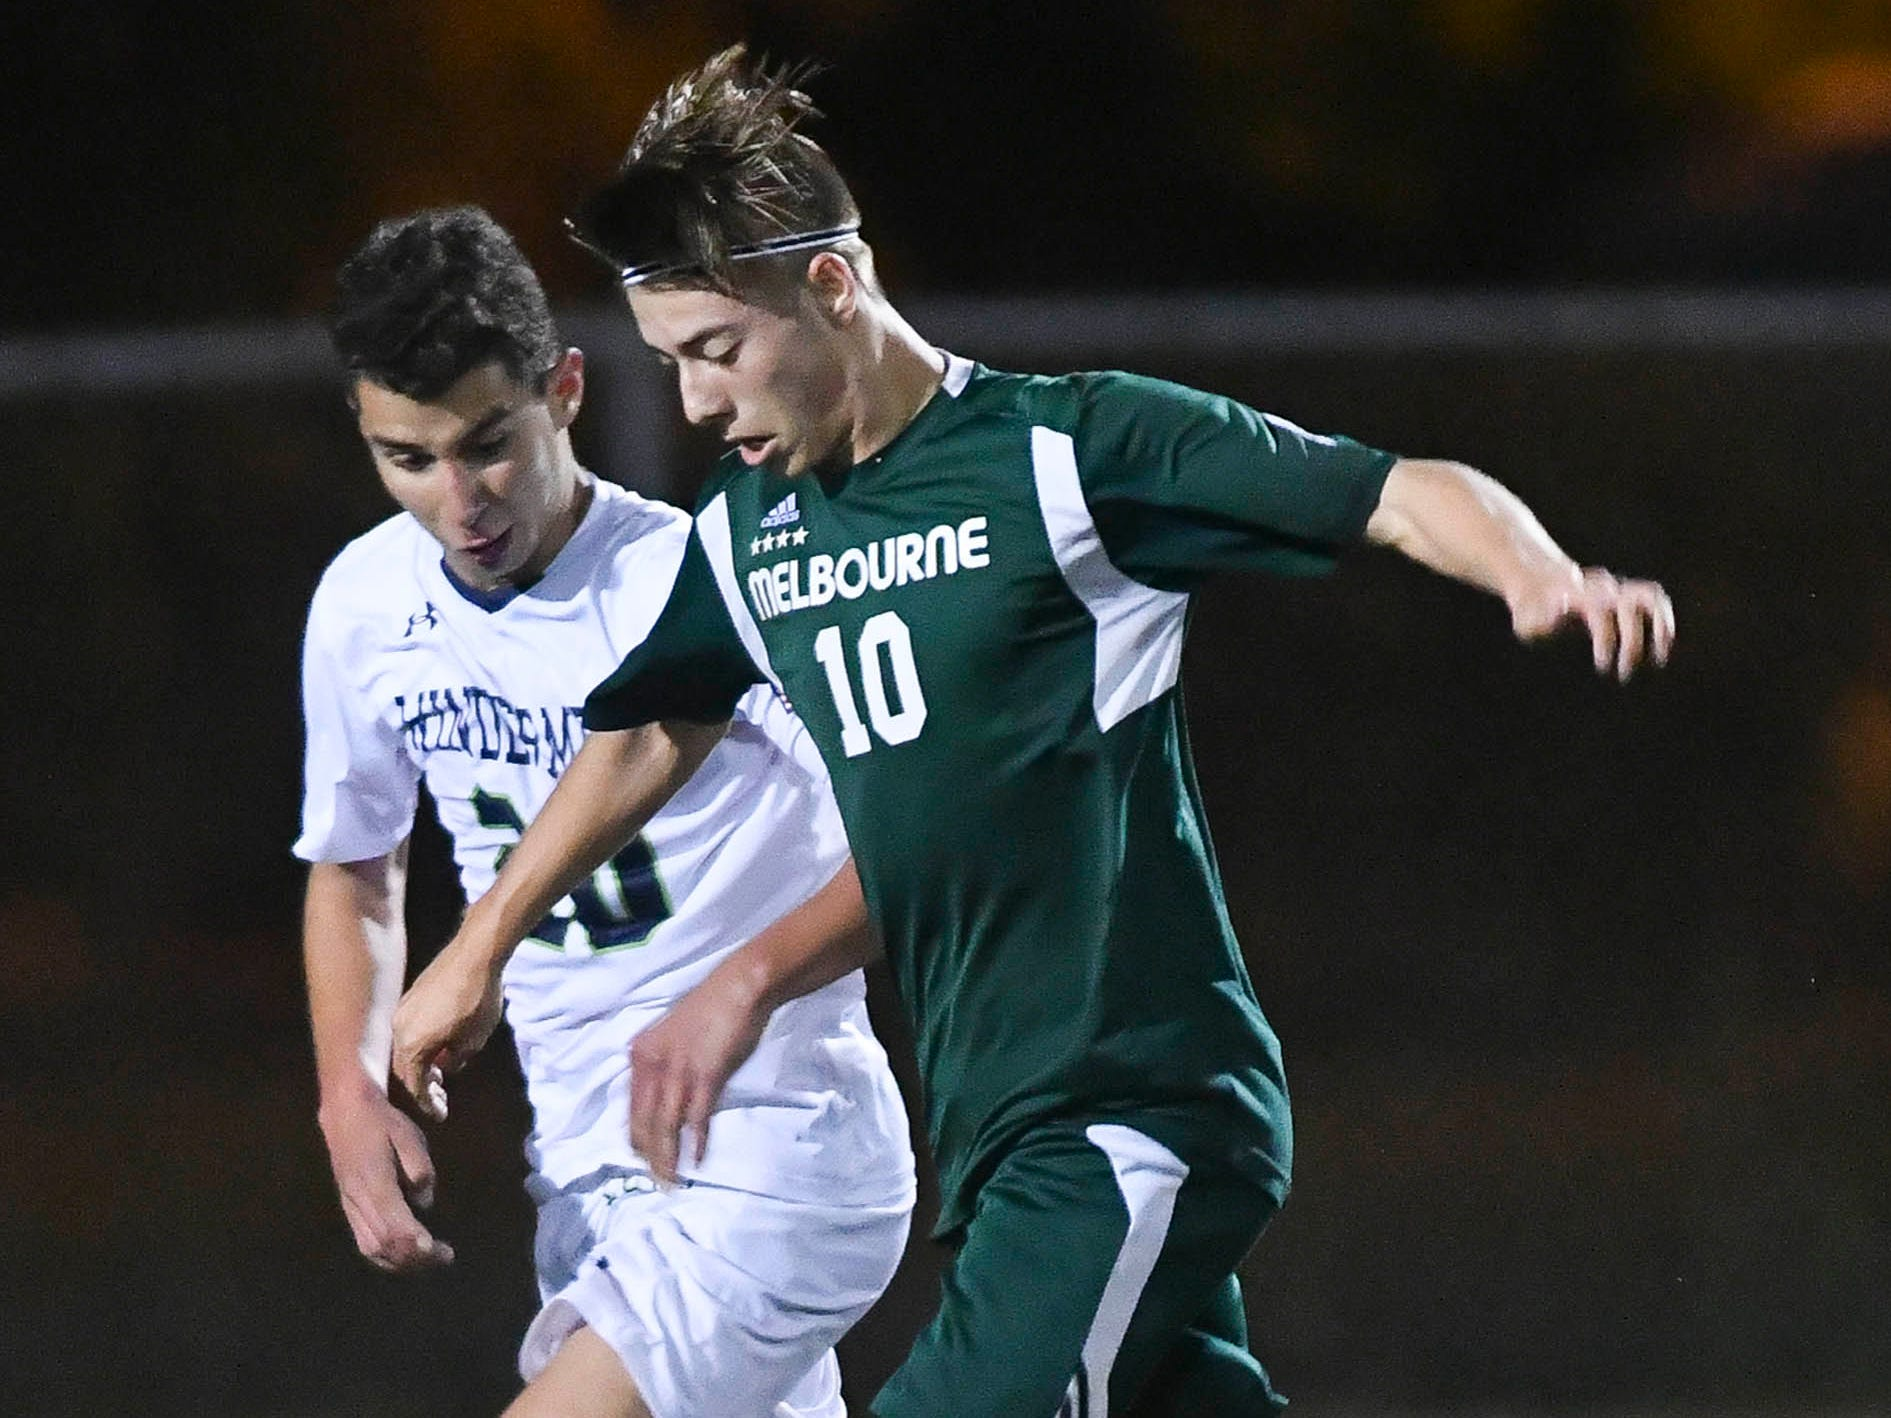 Melbourne's Aden O'Hara tries to drive past a Windermere defender during Saturday's Class 4A boys soccer regional semifinal.